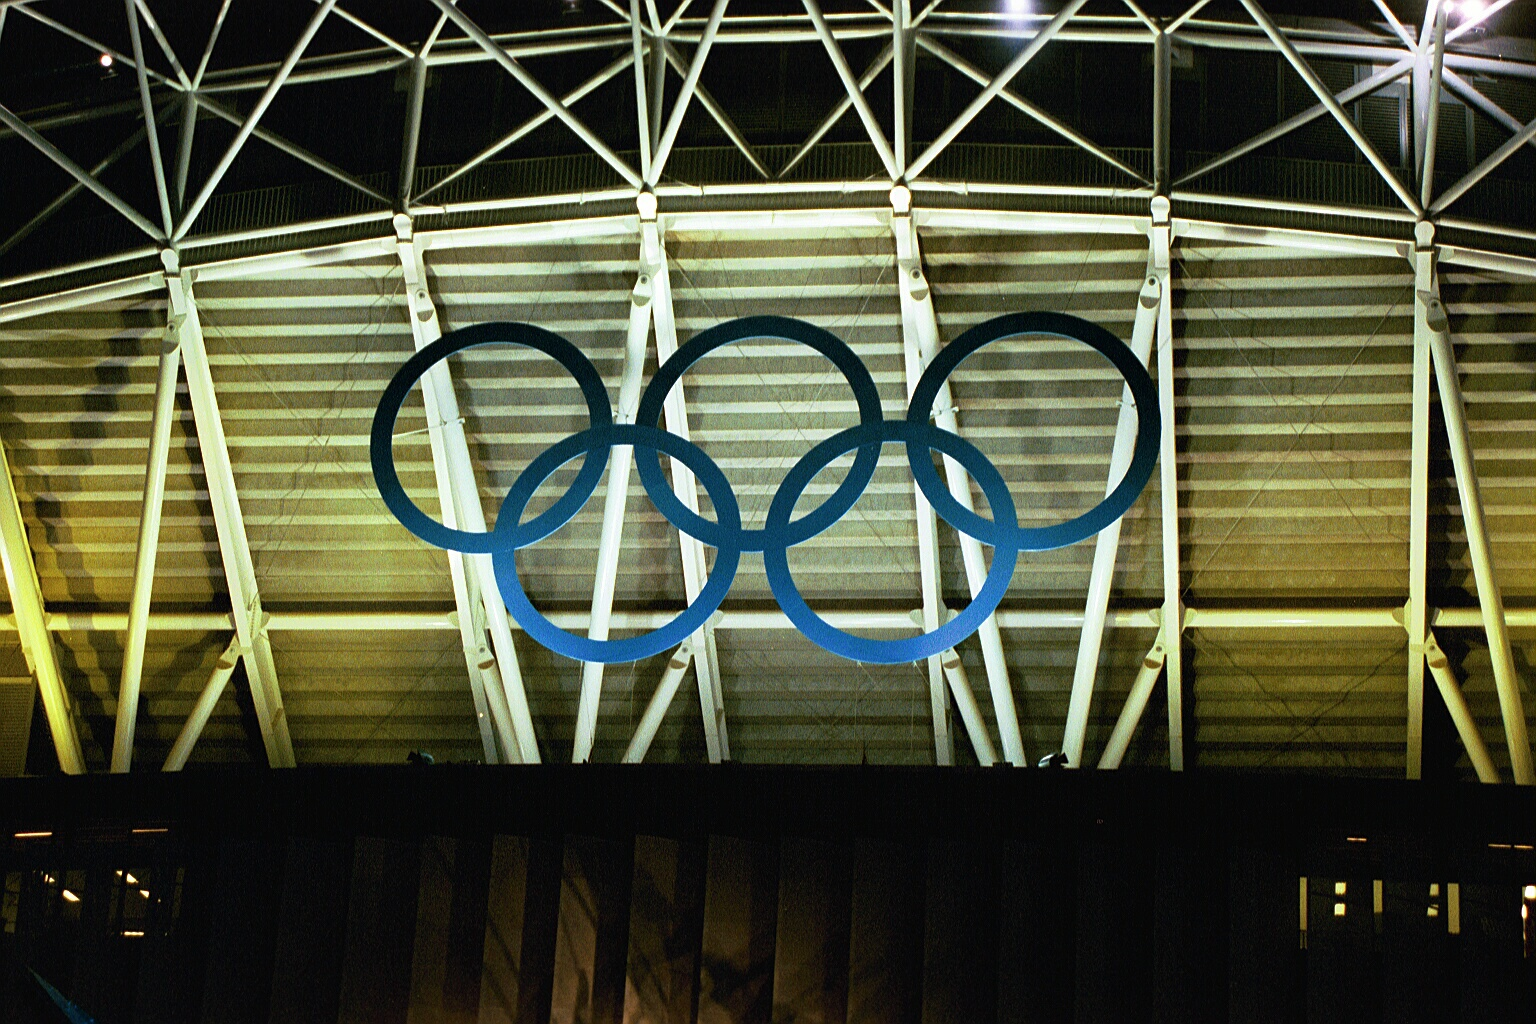 Olympic Rings outside of stadium